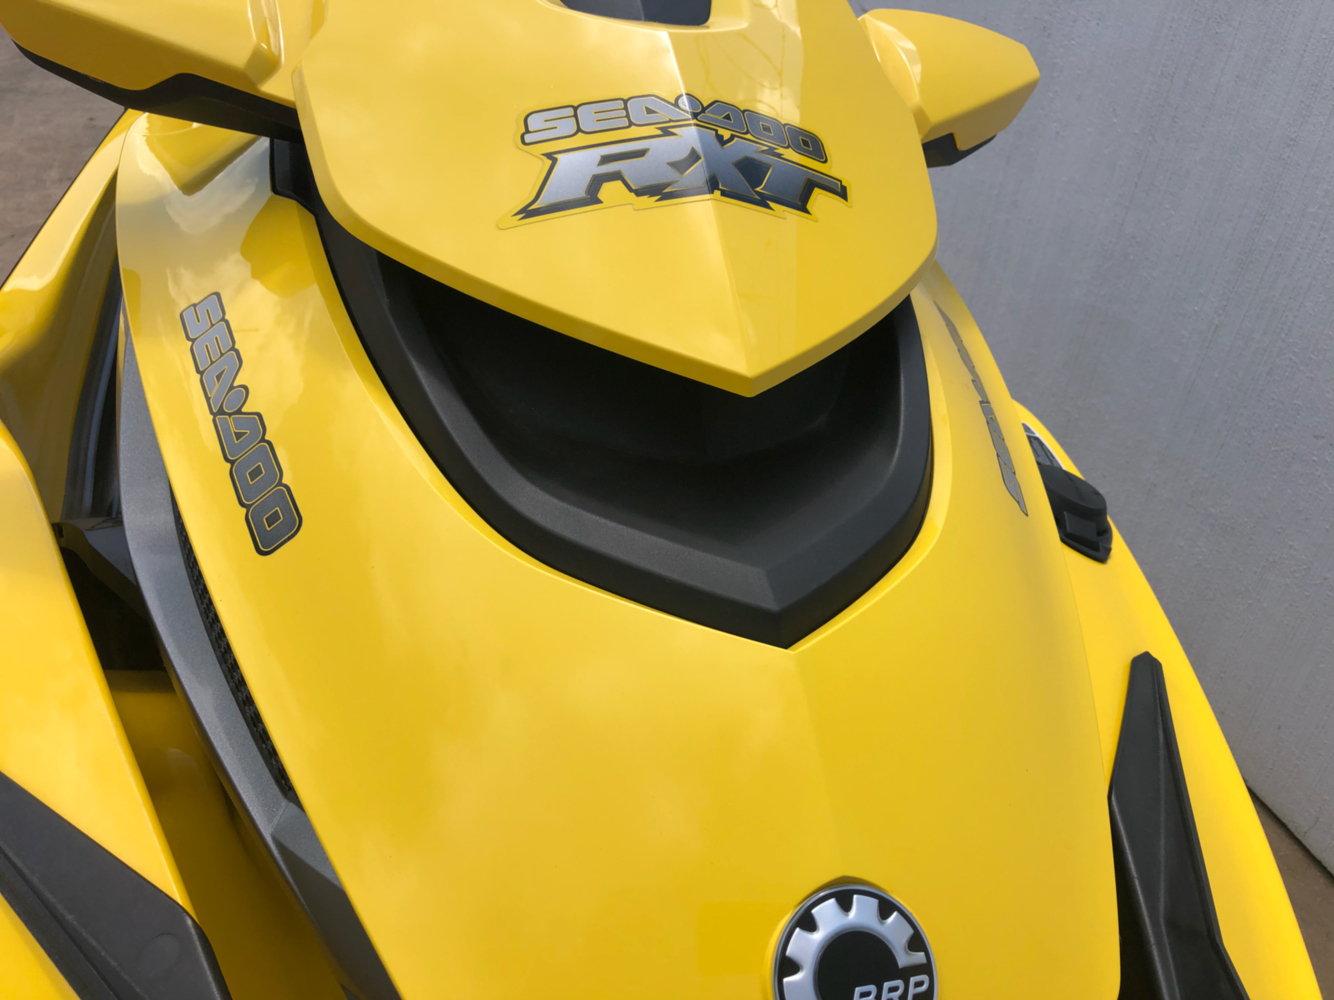 2011 Sea-Doo RXT® iS™ 260 in Broken Arrow, Oklahoma - Photo 3